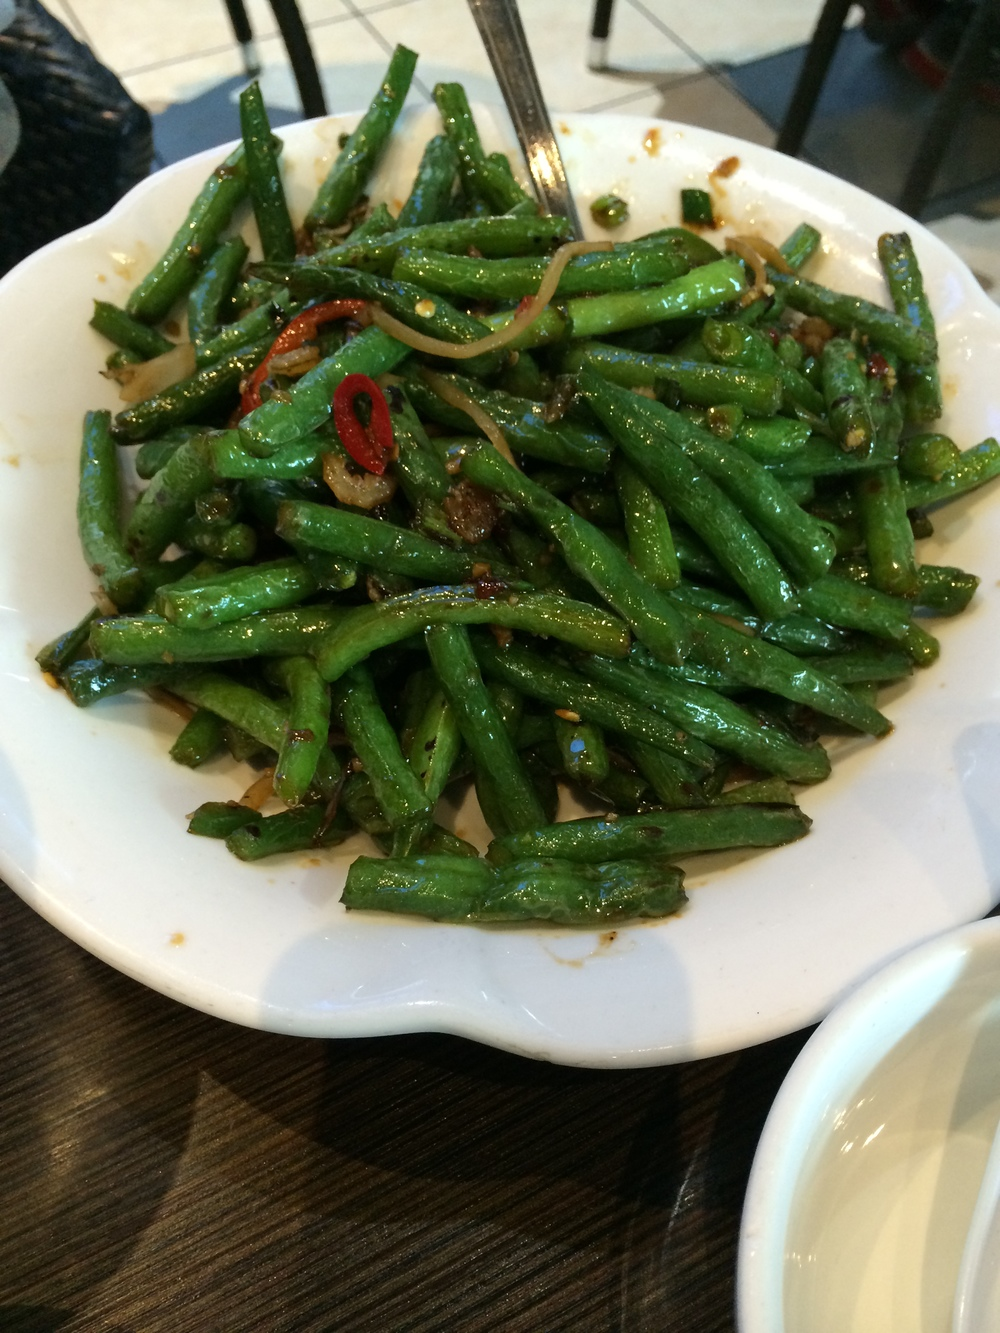 Green beans - spicy style, with mini dried shrimp